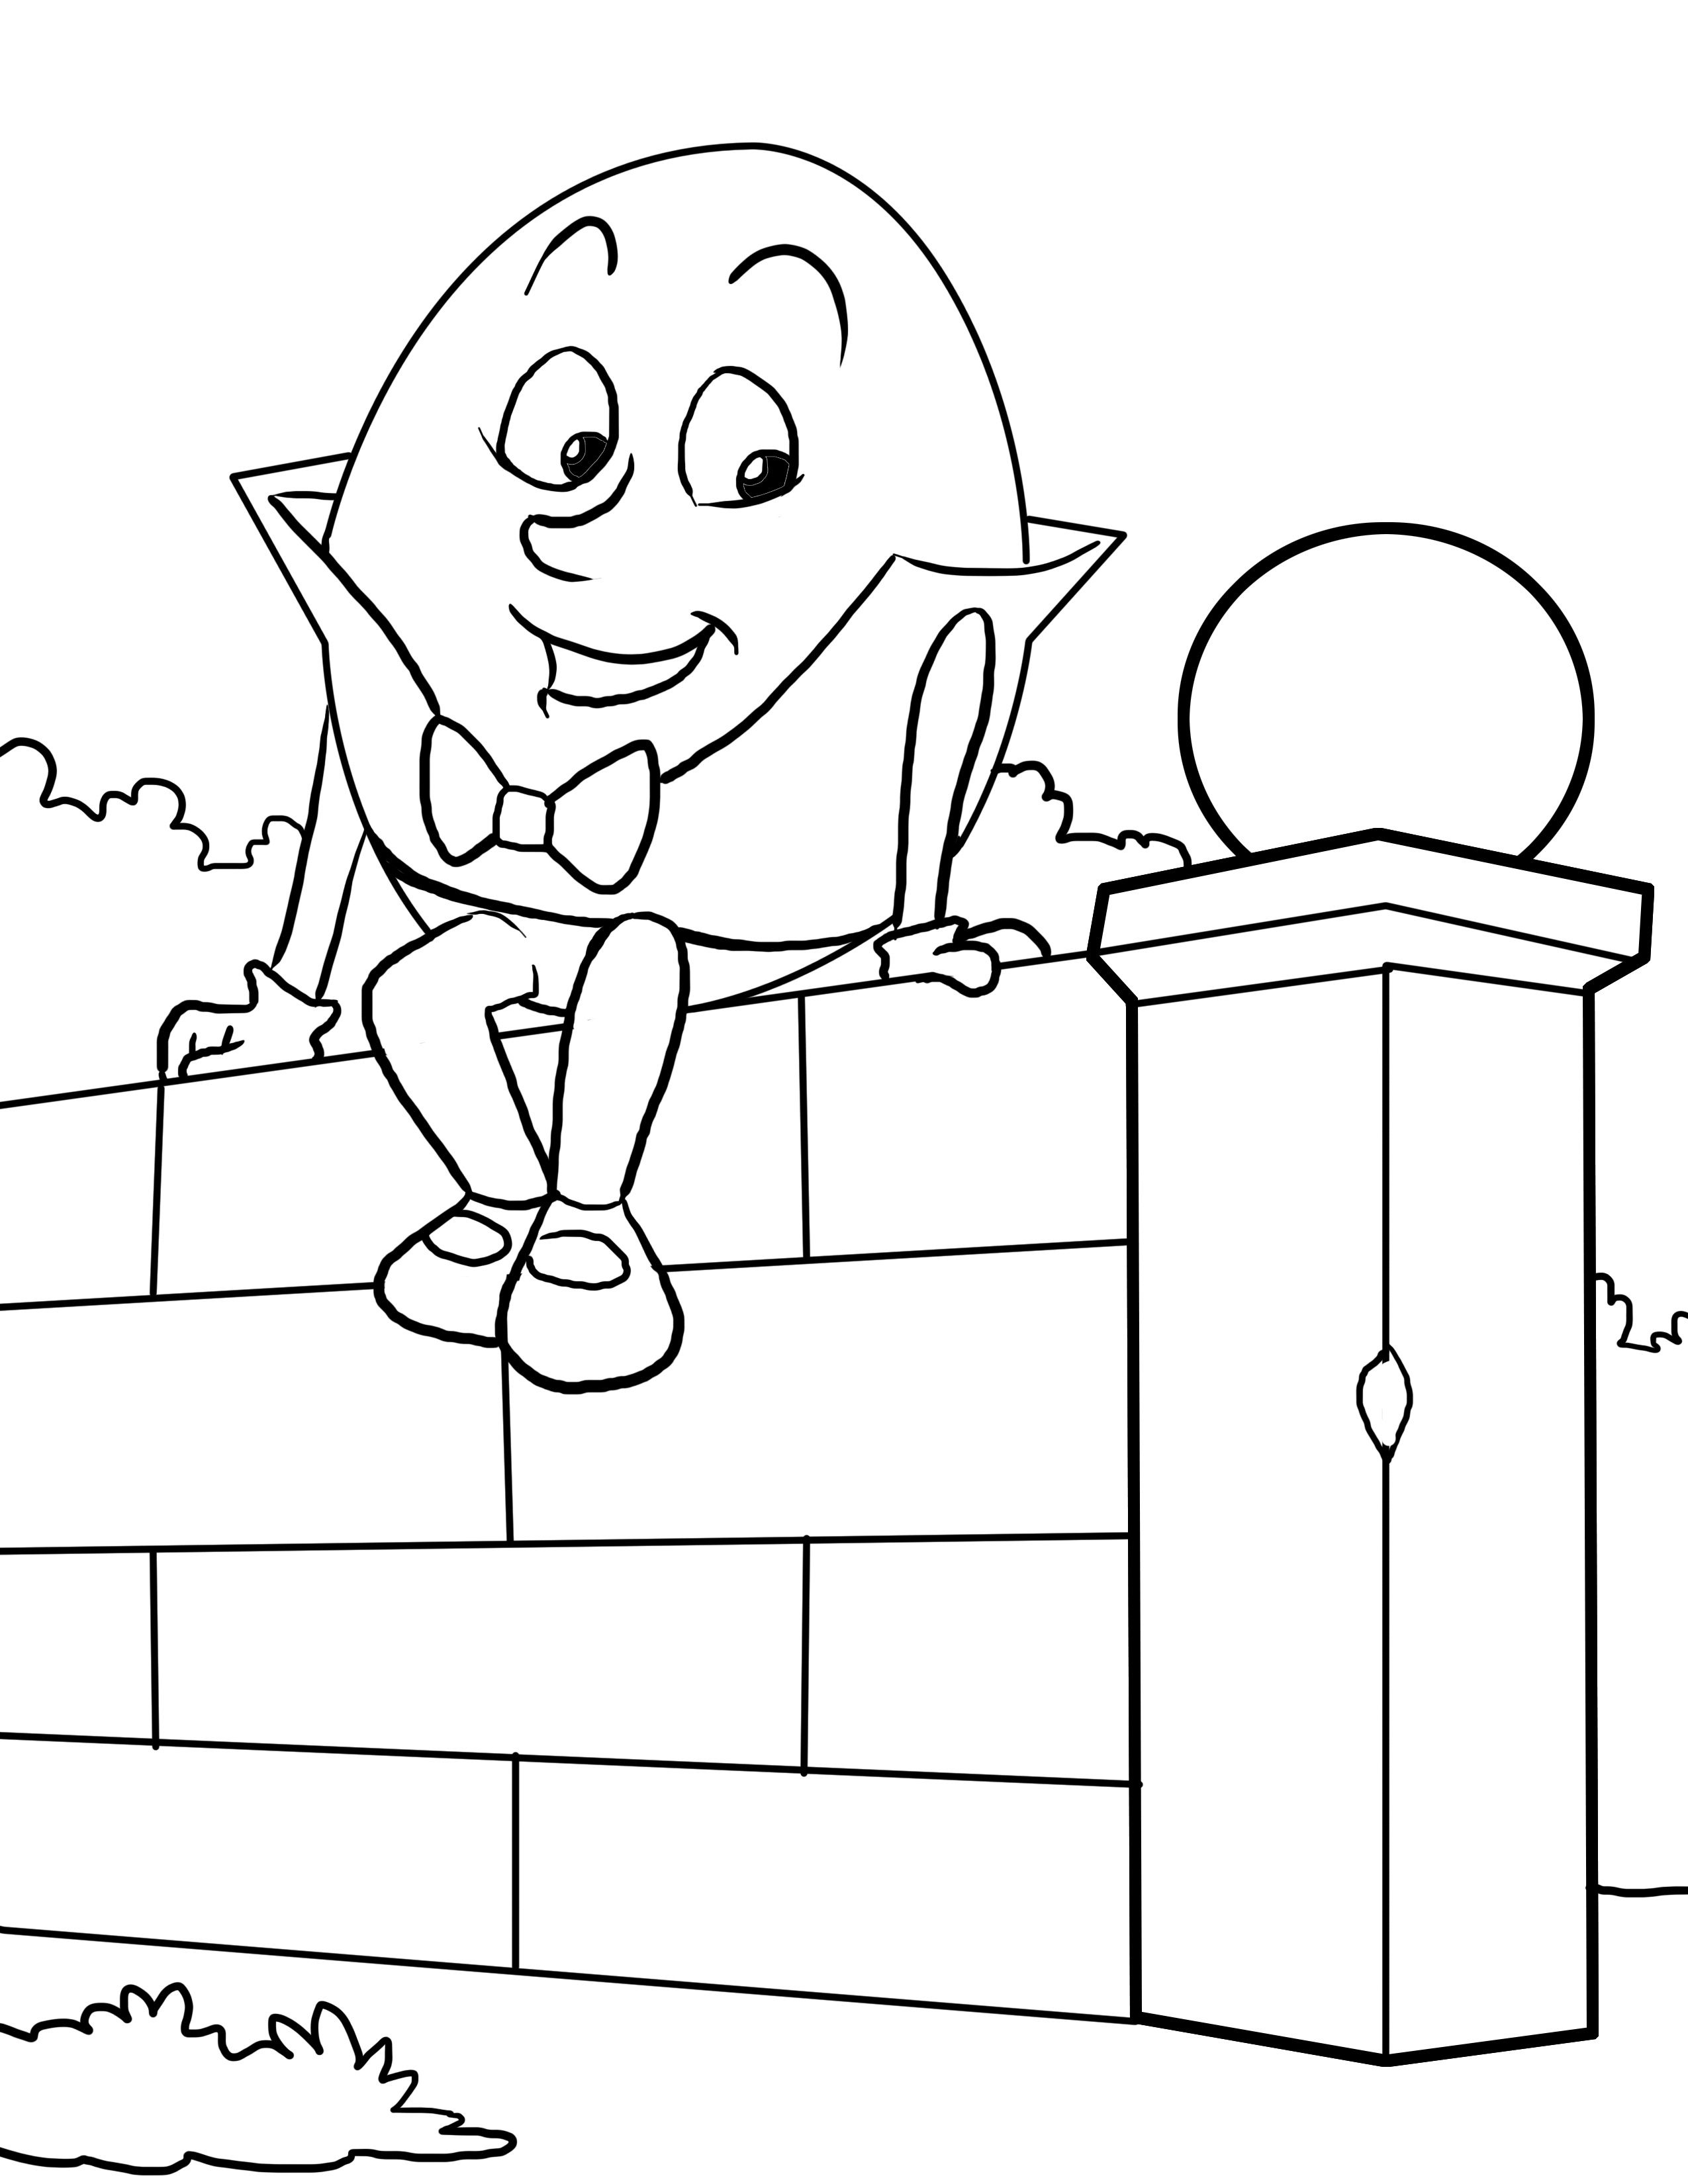 Worksheet For Nursery Coloring Books Cartoon Coloring Pages